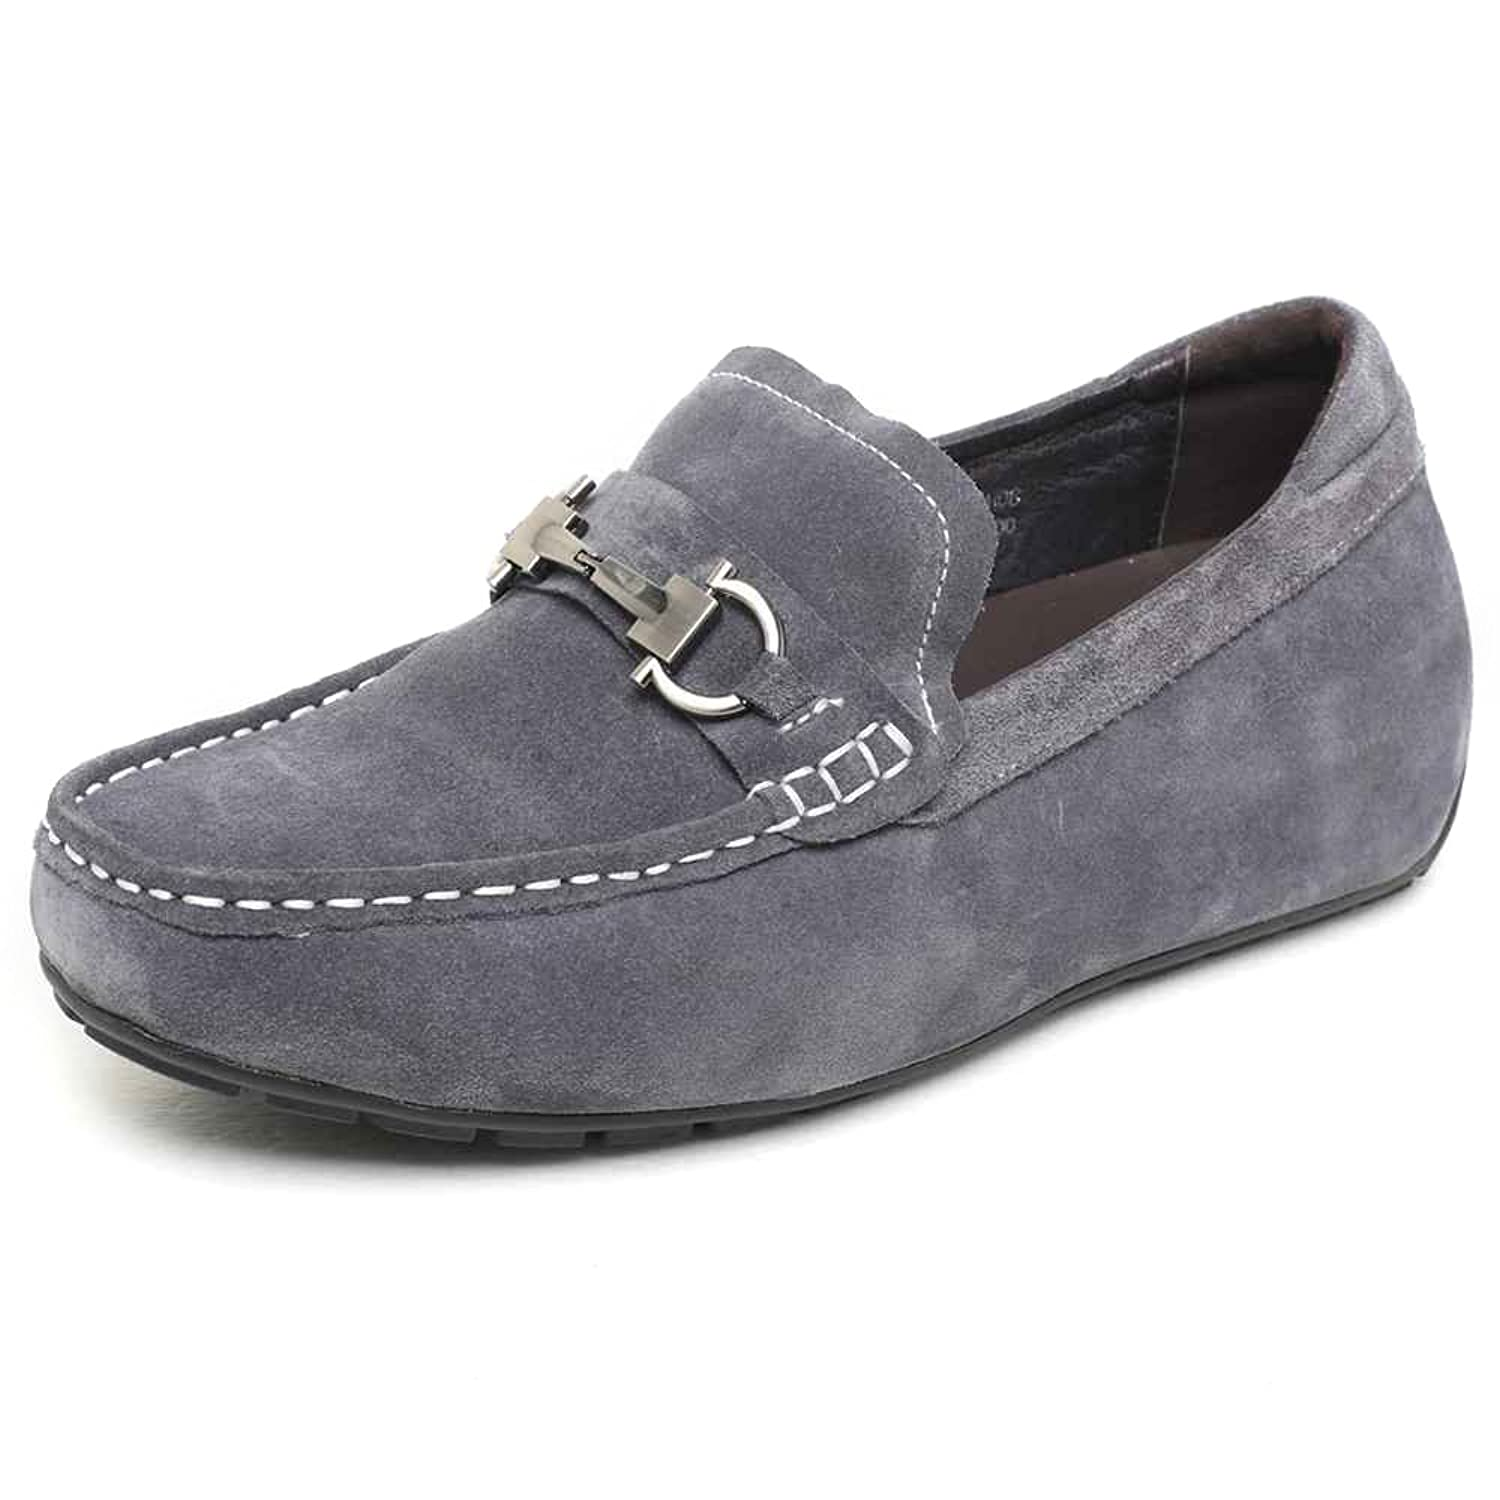 CHAMARIPA Height Shoes 2.17'' Men's Casual Leather Driving Loafer Elevator Shoes 032H08